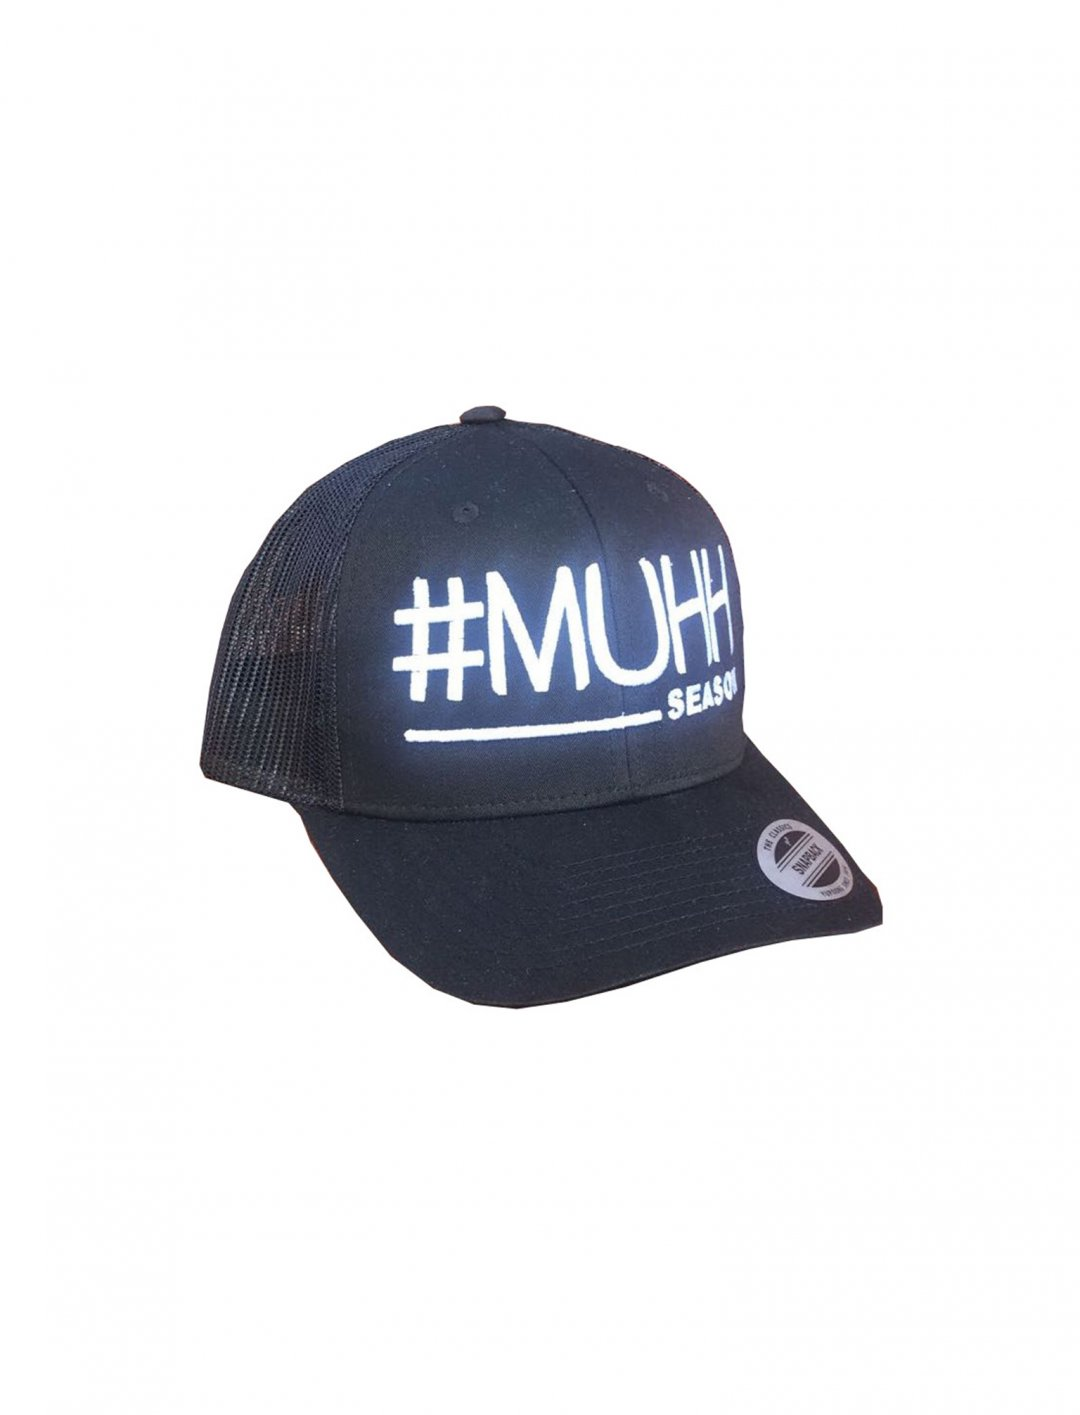 "MUHH Season Cap {""id"":5,""product_section_id"":1,""name"":""Clothing"",""order"":5}"